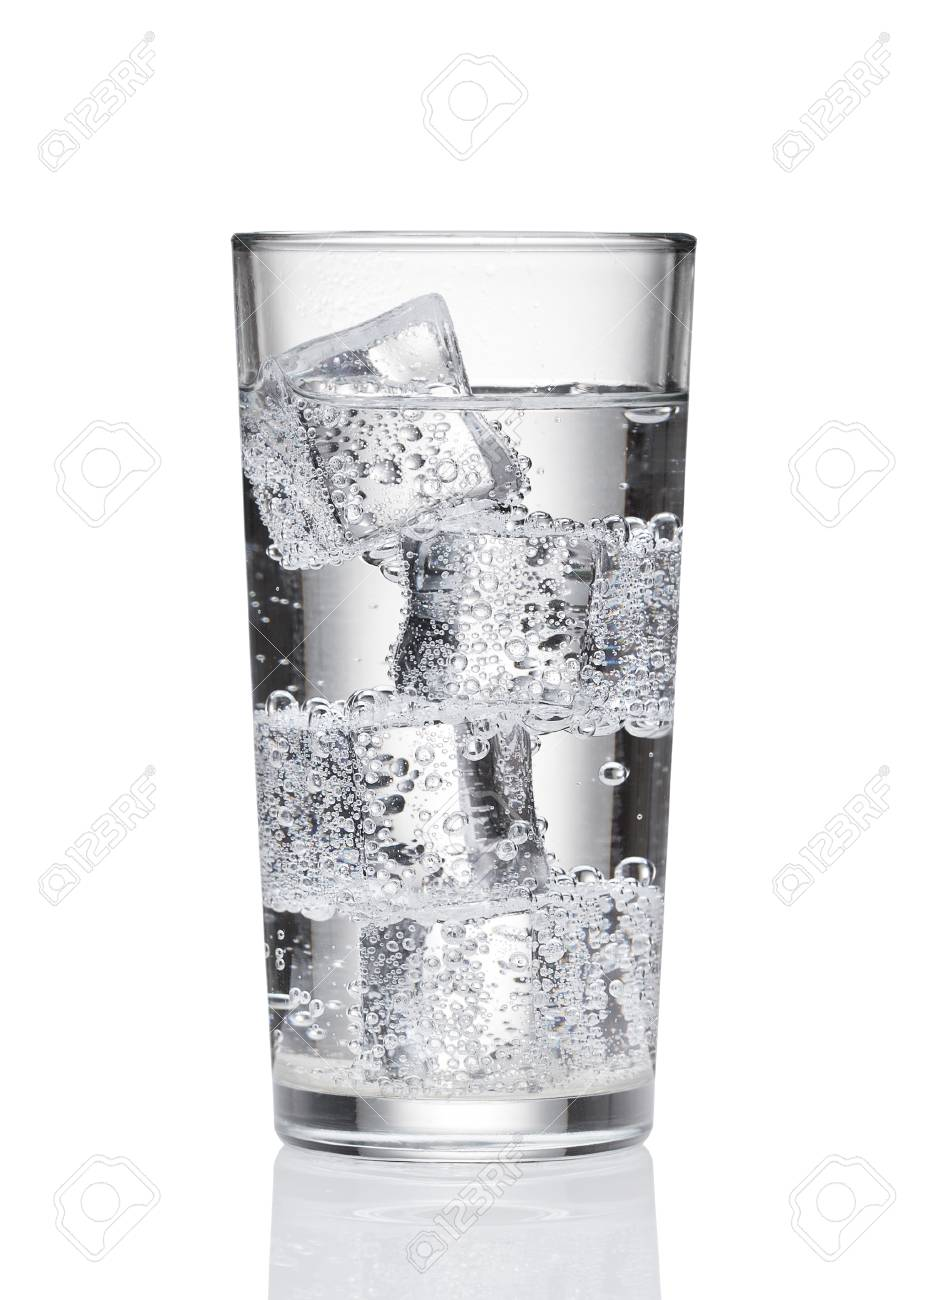 bf574706dd0 Stock Photo - Water in a glass on a white background. Cold water with ice.